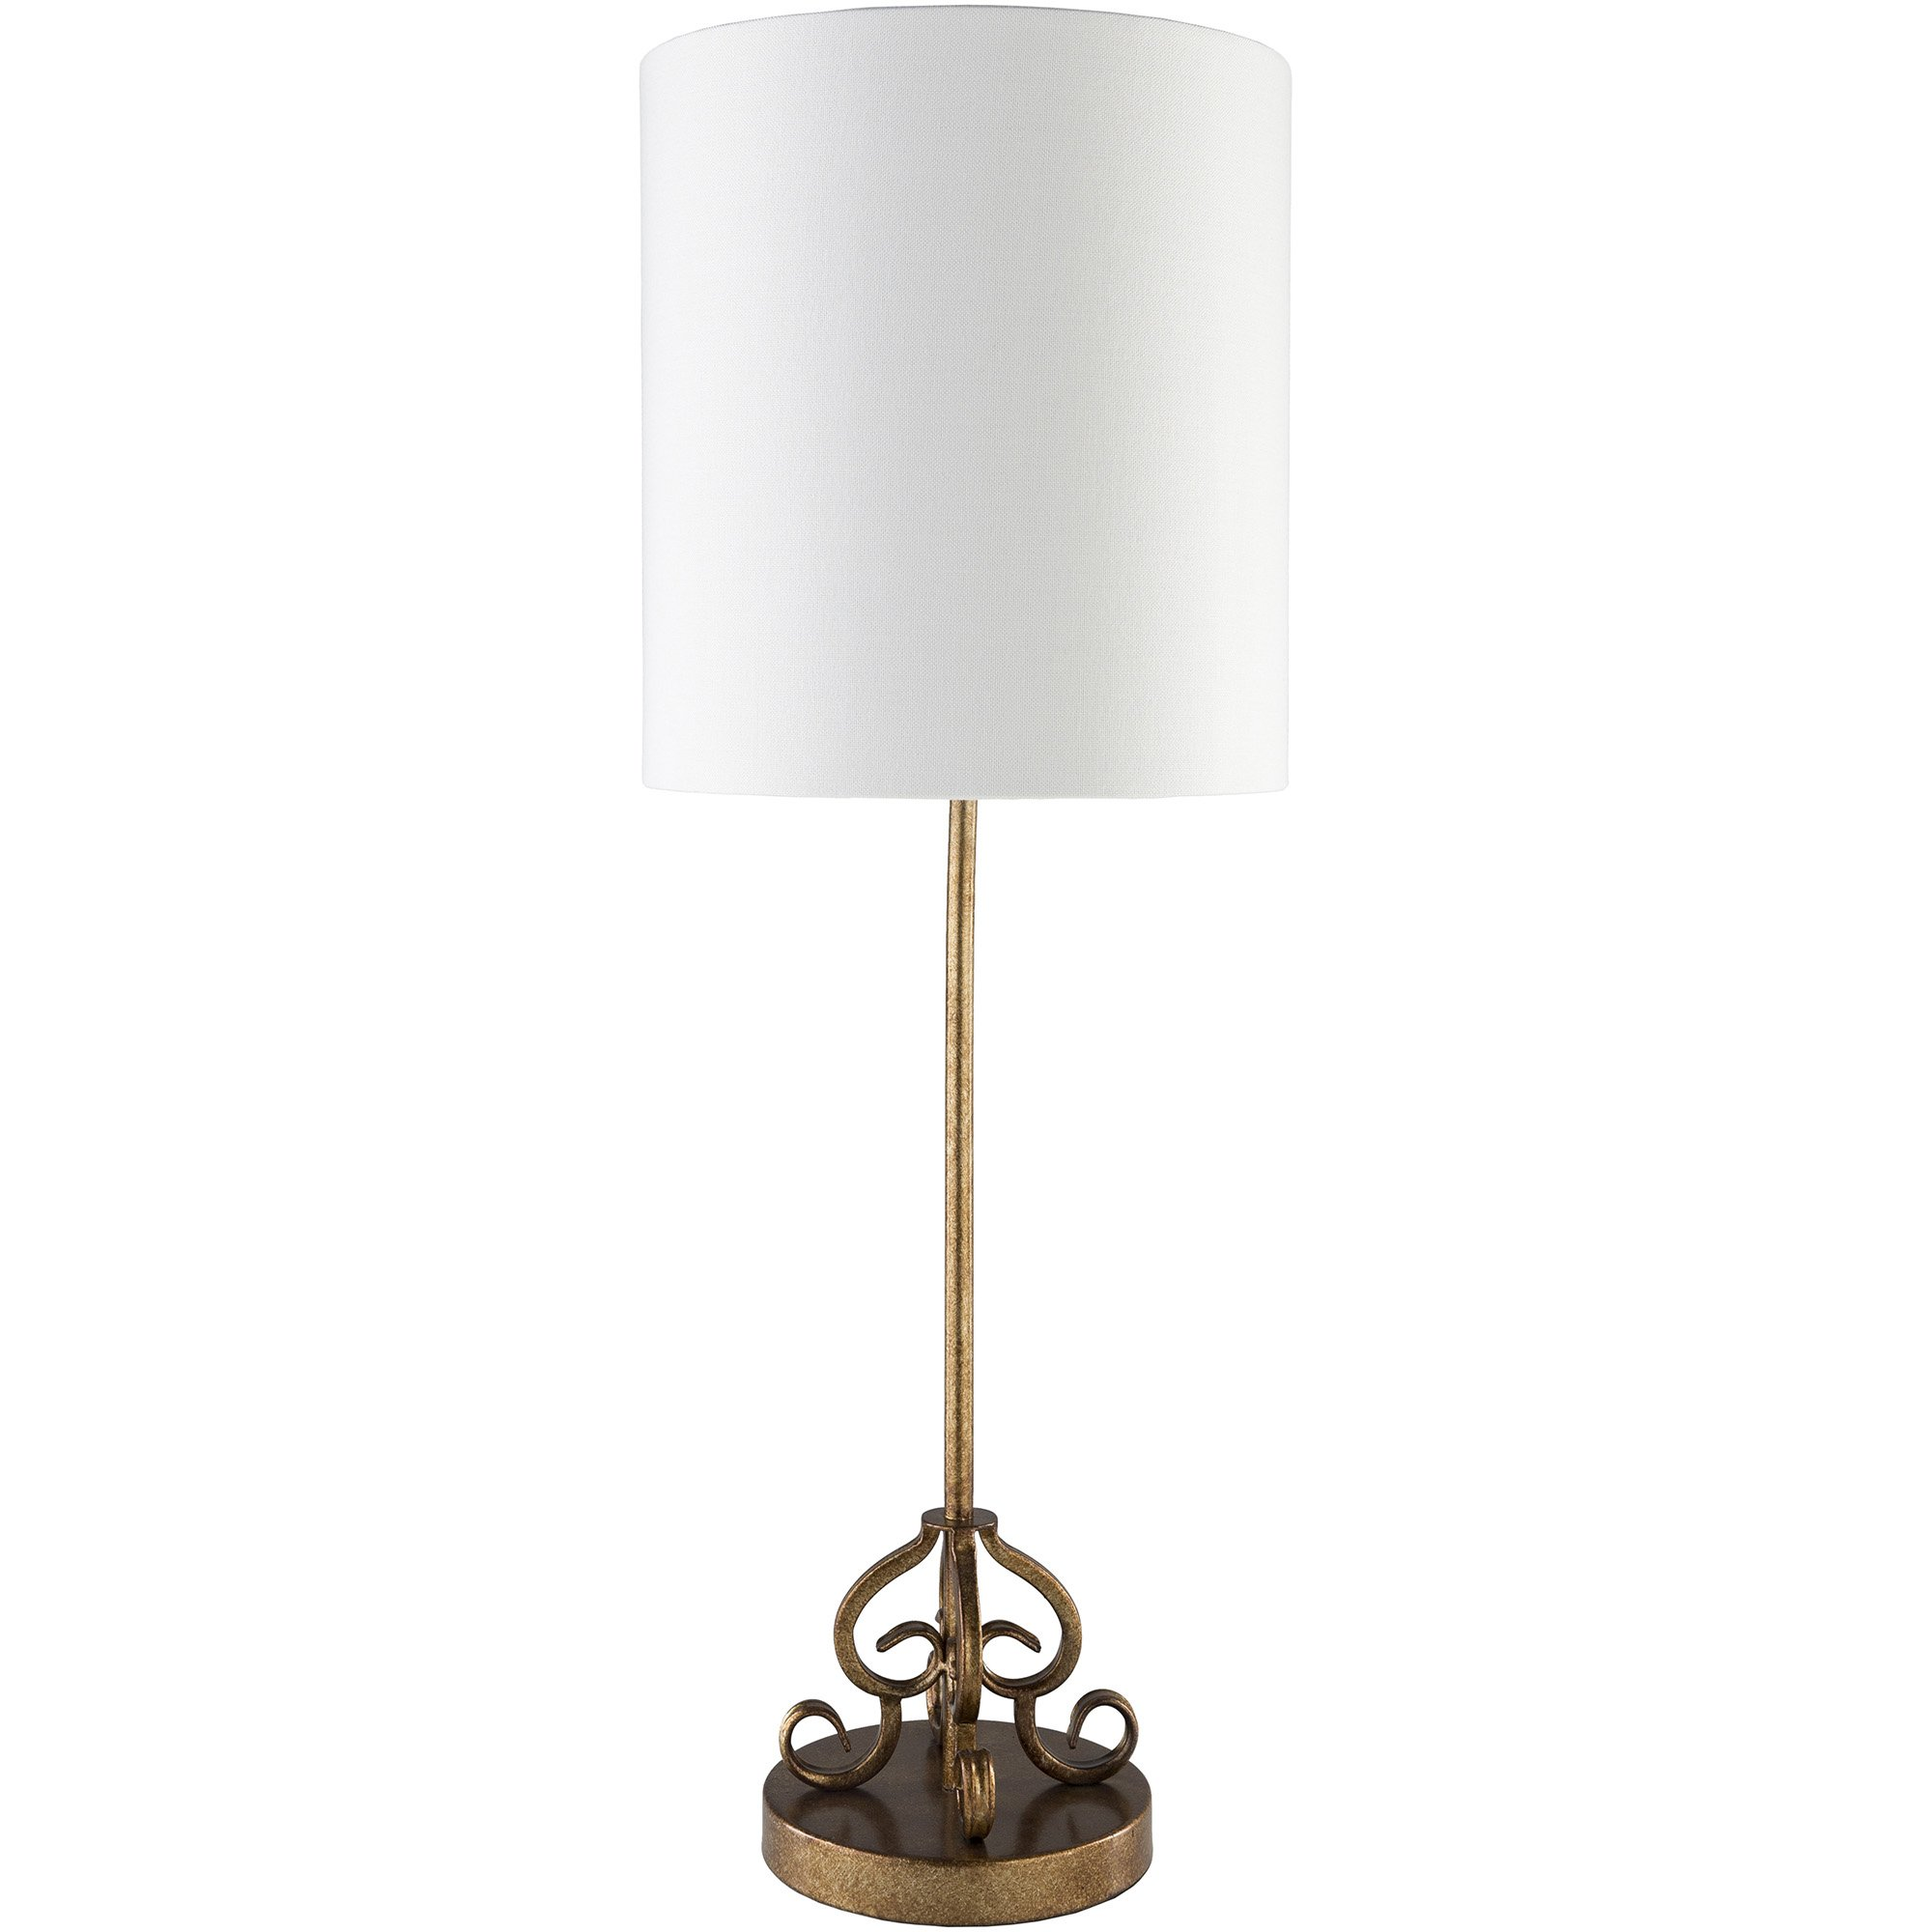 ackerman gold accent table lamp emark tbl modern lamps decorative nesting tables toronto thin cabinet pier west elm tripod floor fruit cocktail small square outdoor tablette prix